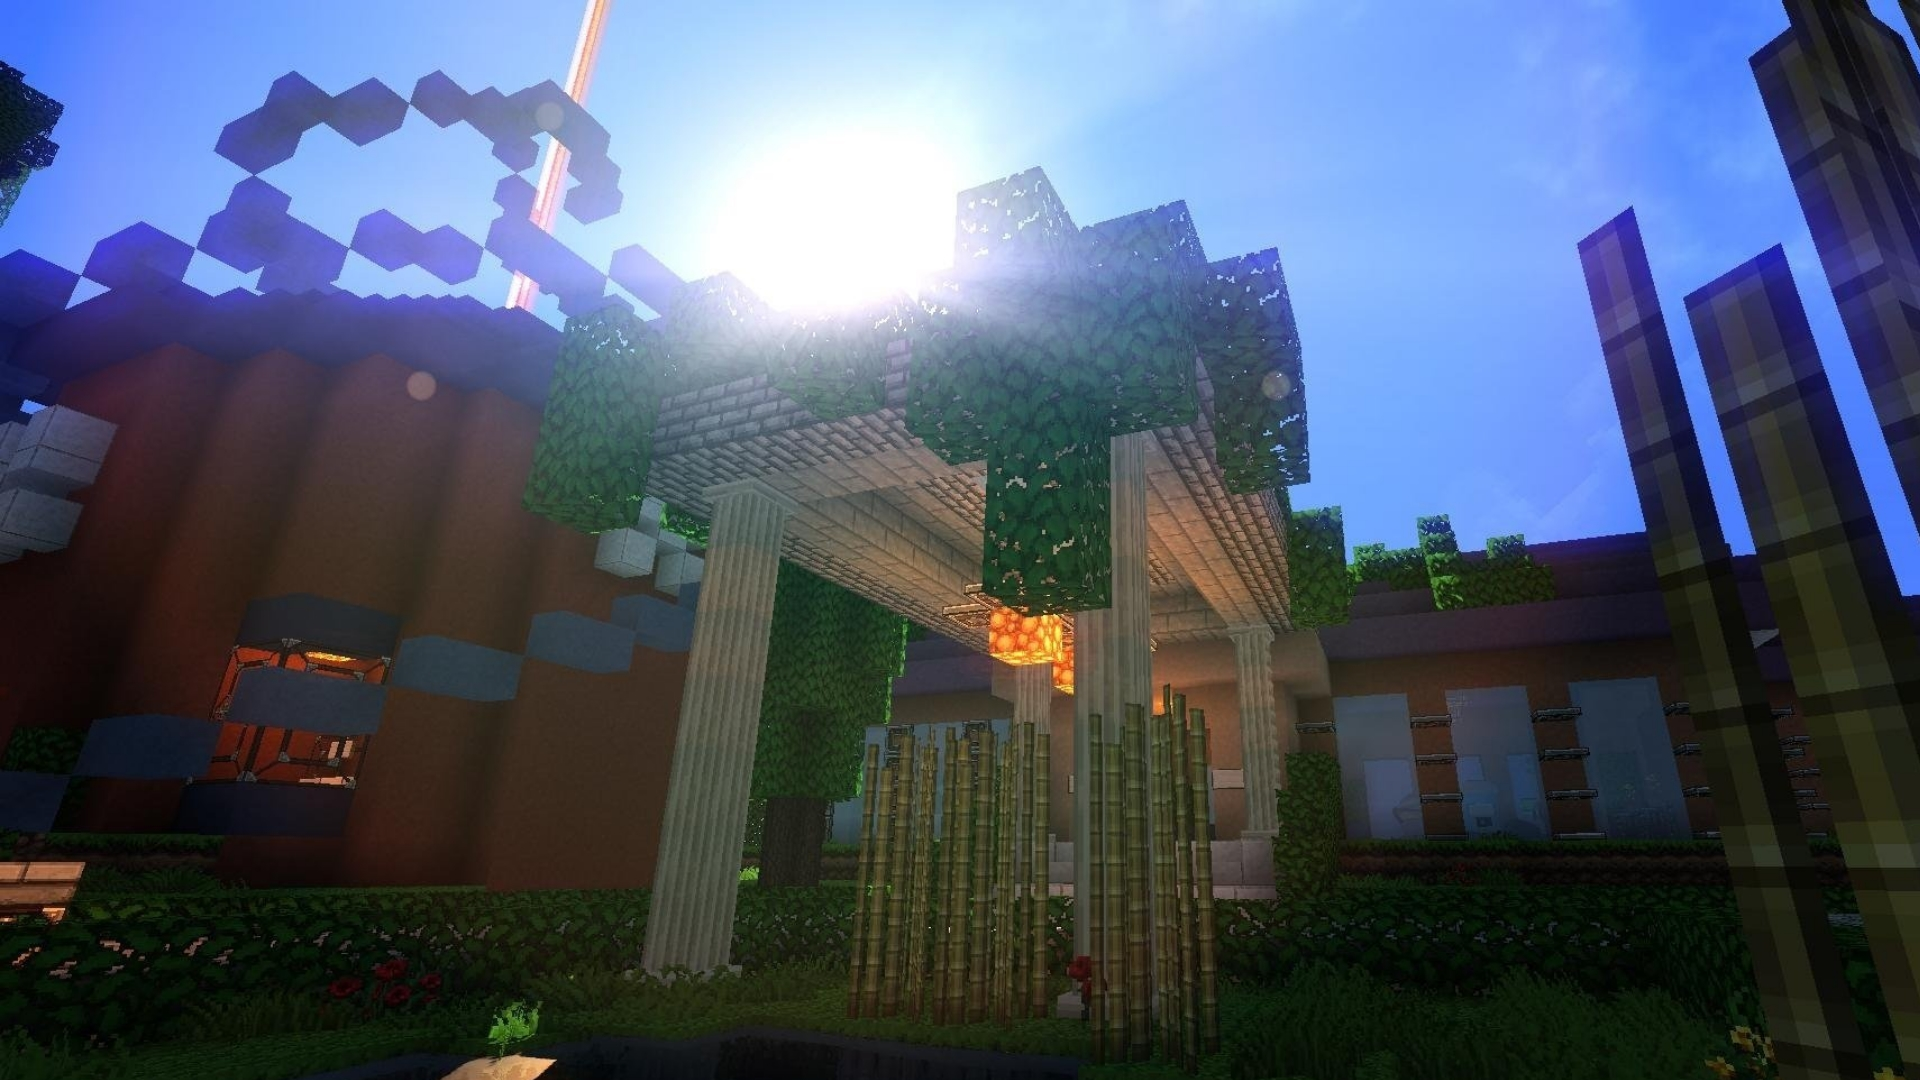 Minecraft 2 release date, news, and mods – all the latest